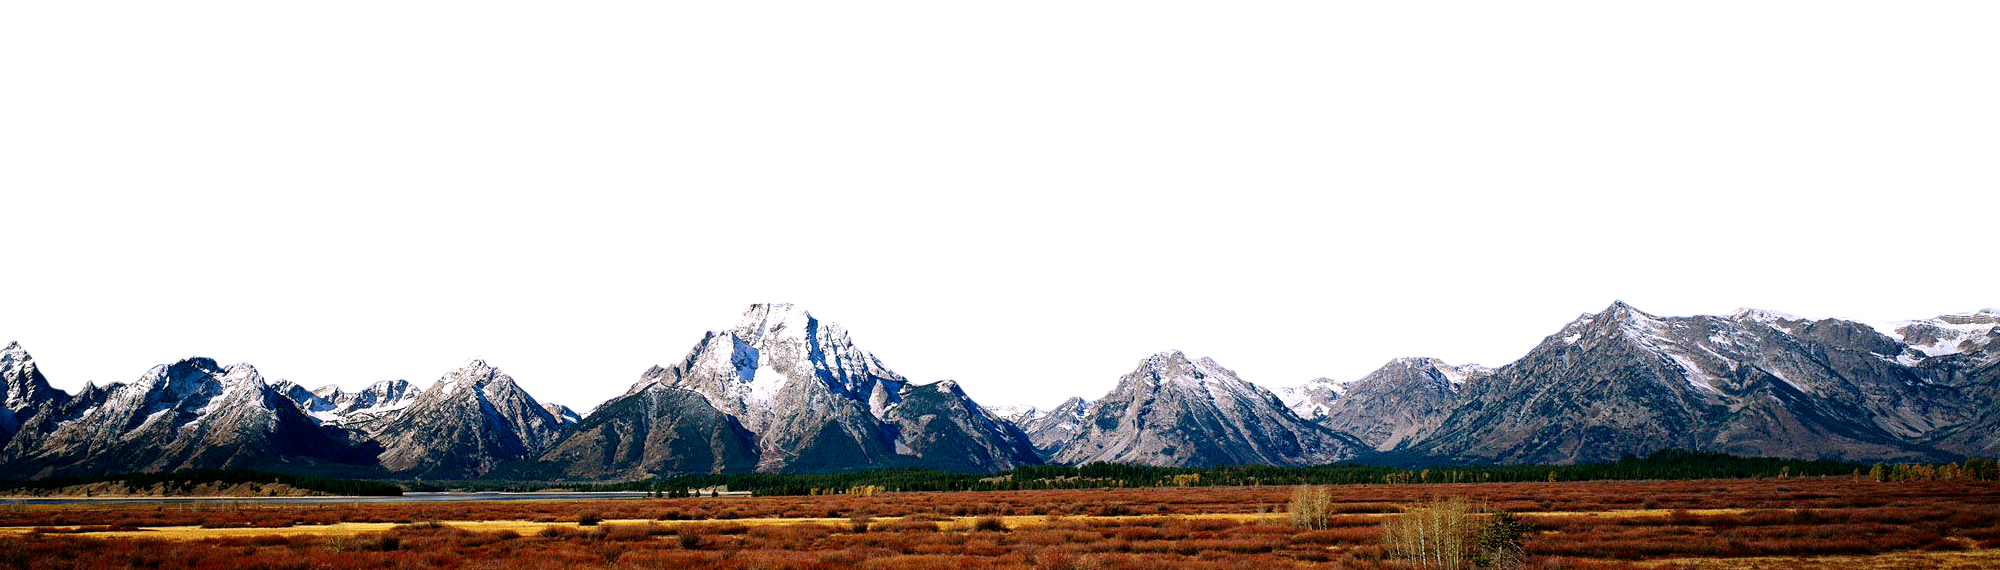 Mountain PNG - 11316